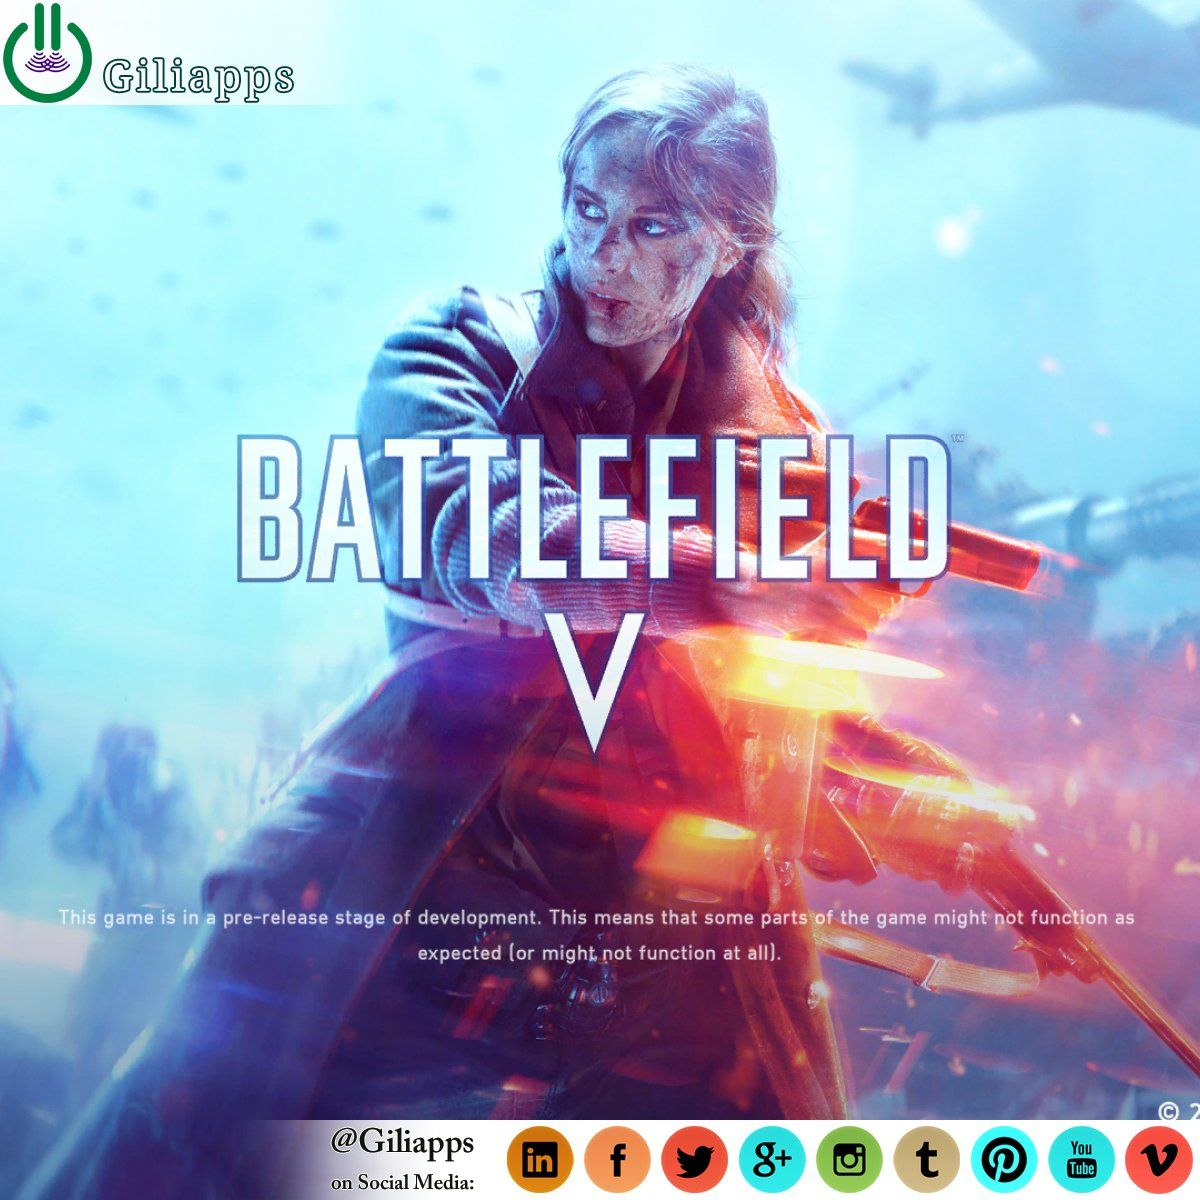 No Second Battlefield V Beta Planned At The Moment With Images